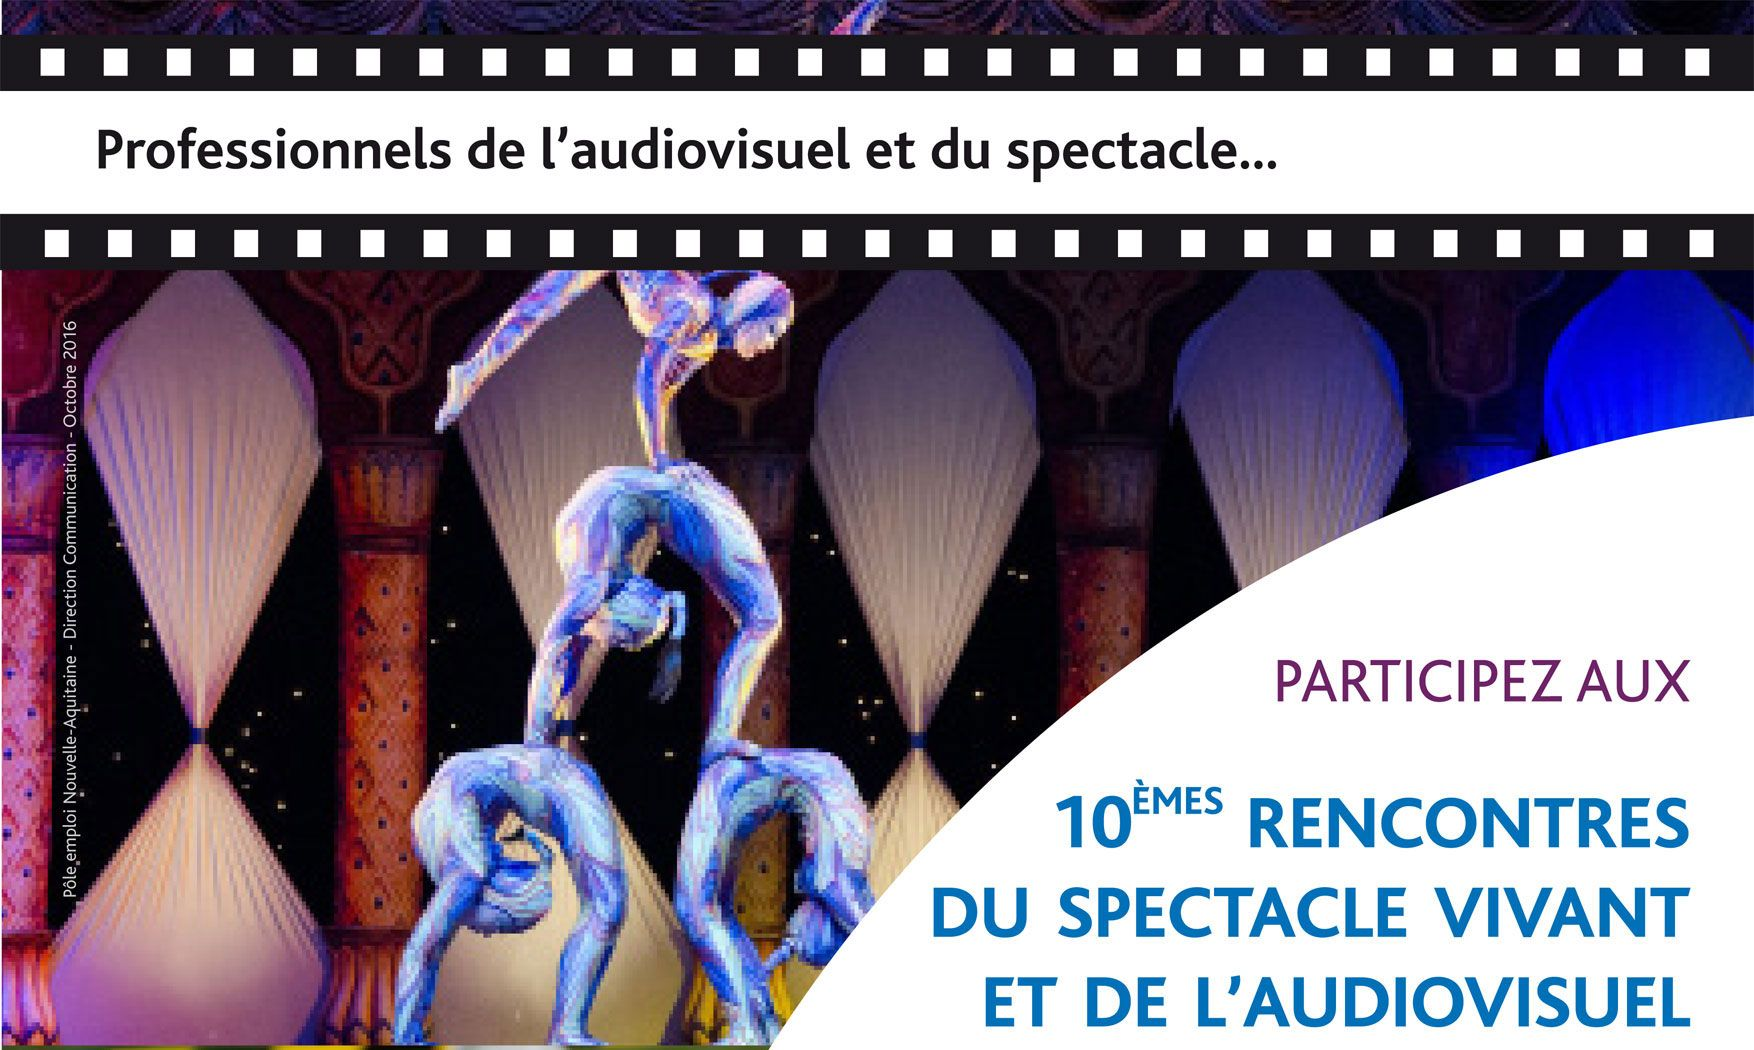 affiche-rencontres-spectacle-angouleme-2016-bdpetit